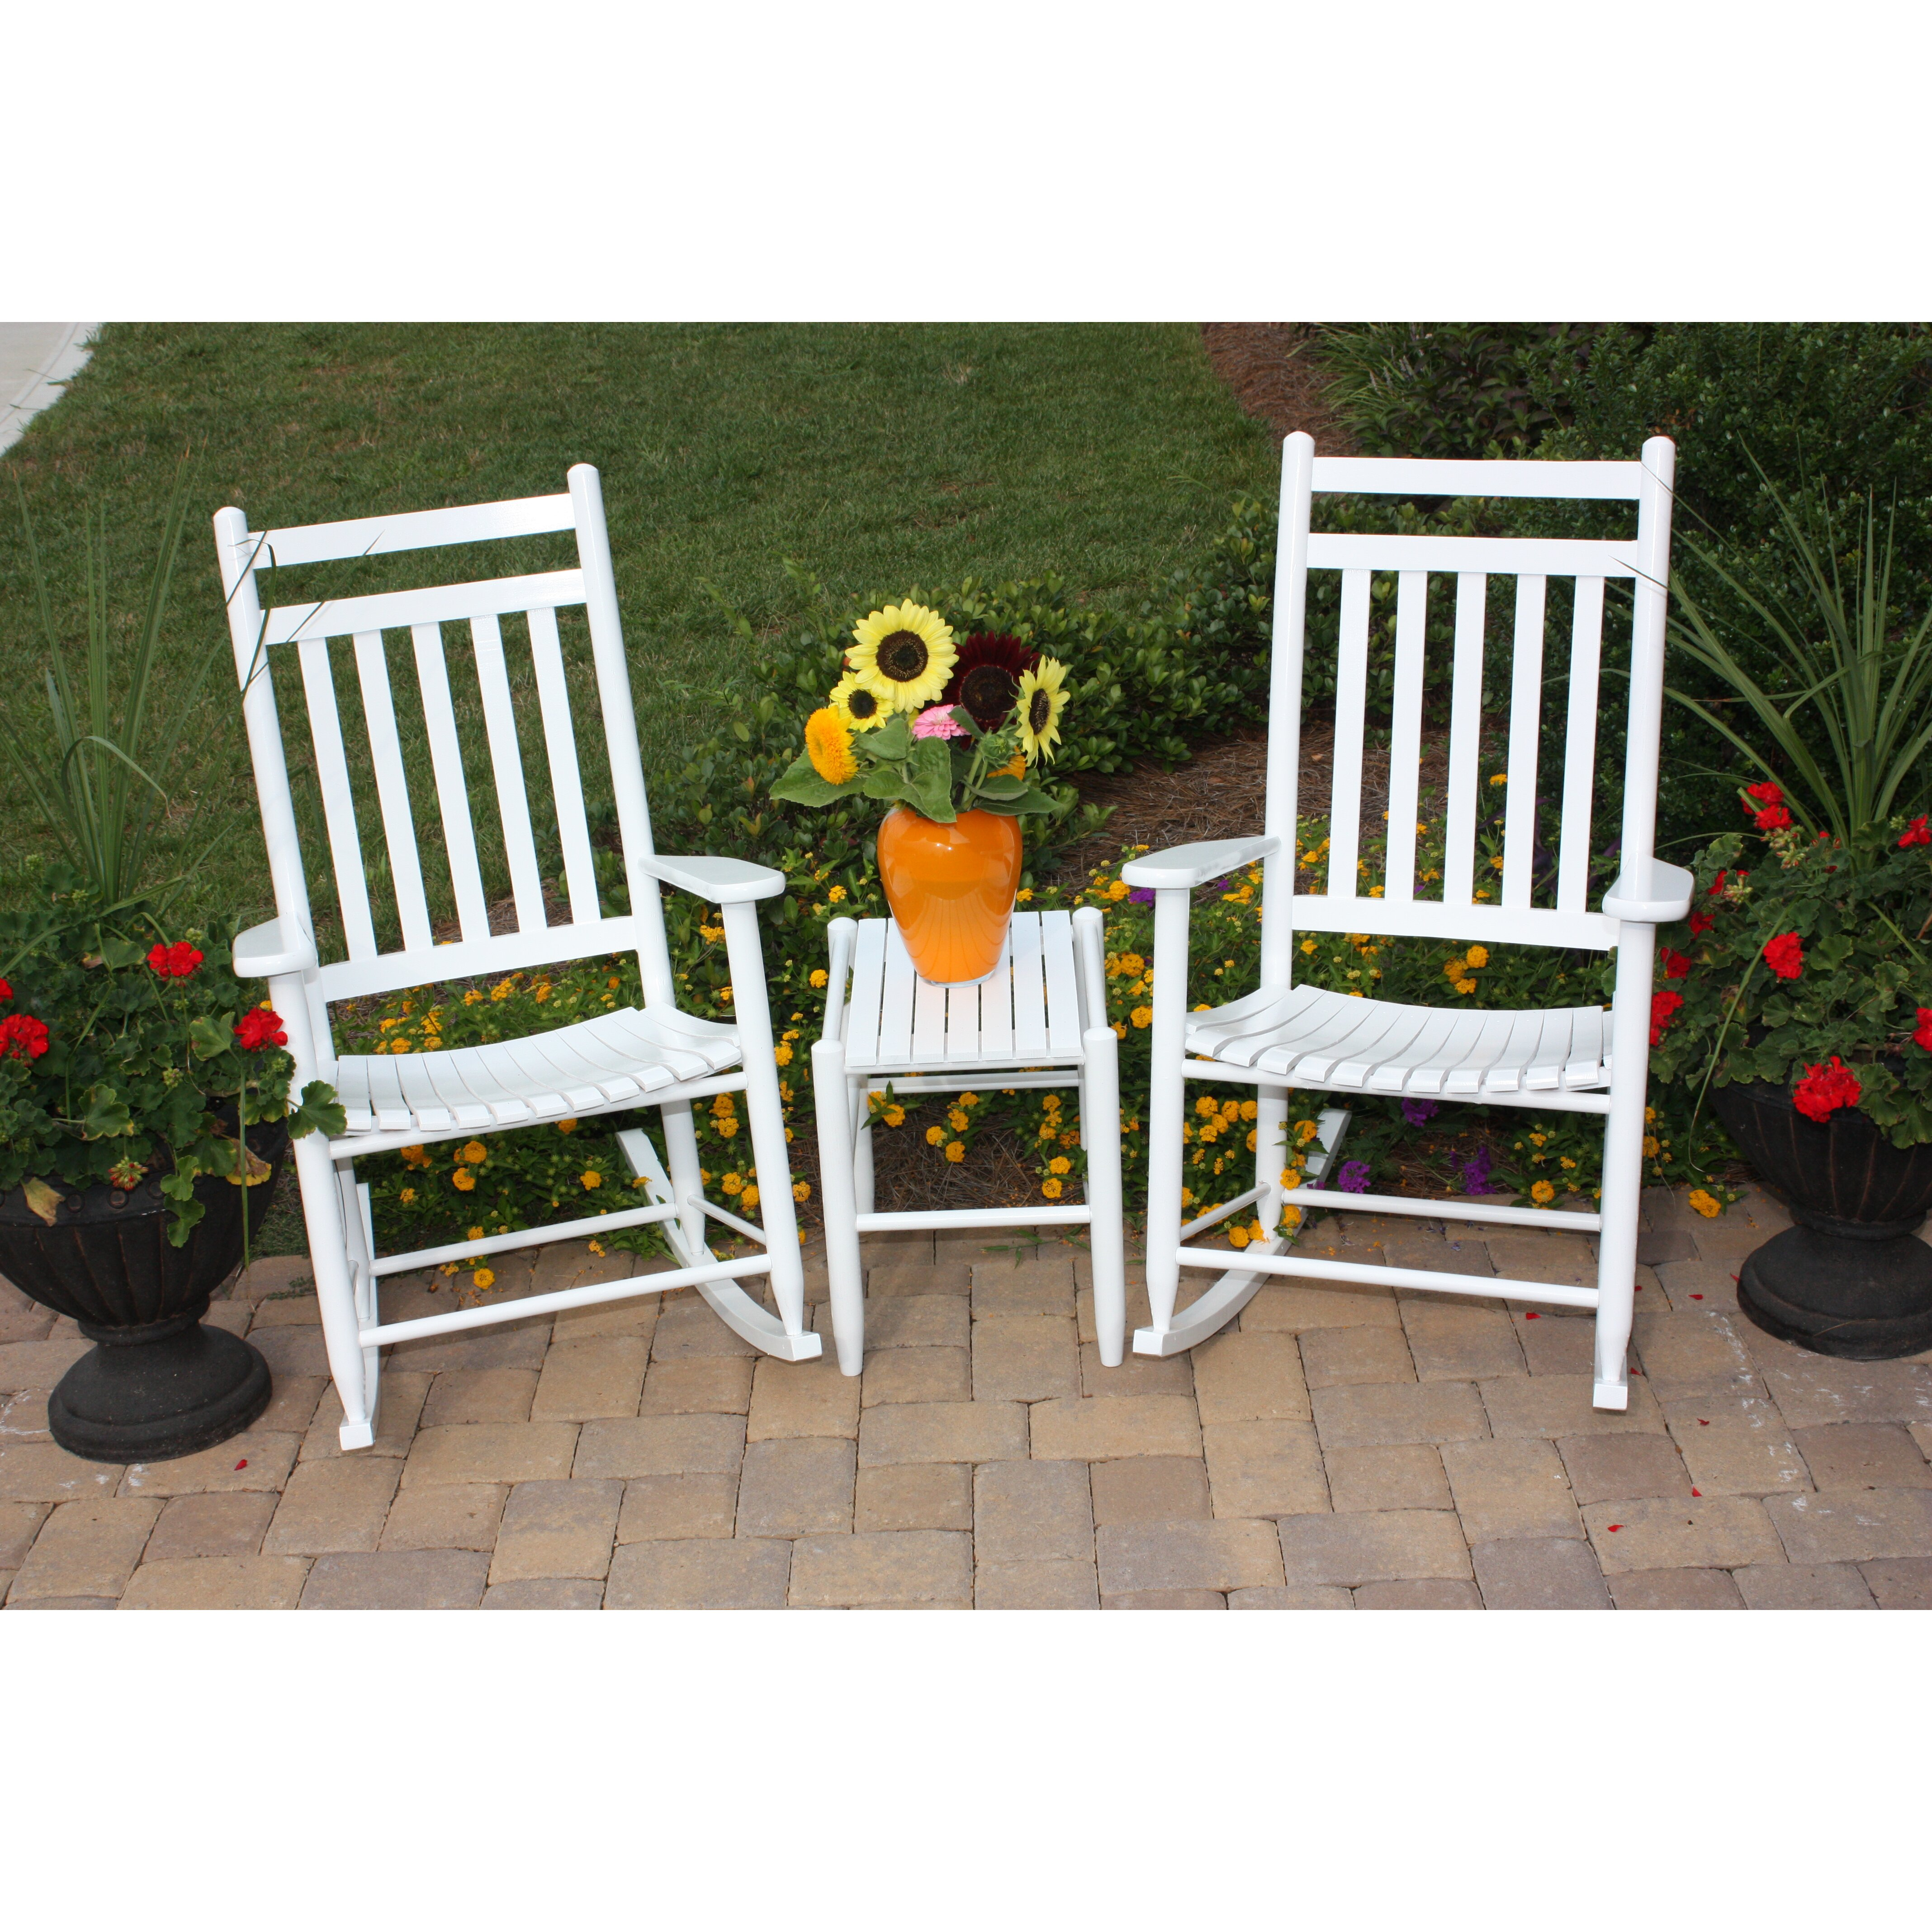 ... Adult Slat Seat Porch Rocking Chair and Table Set & Reviews  Wayfair